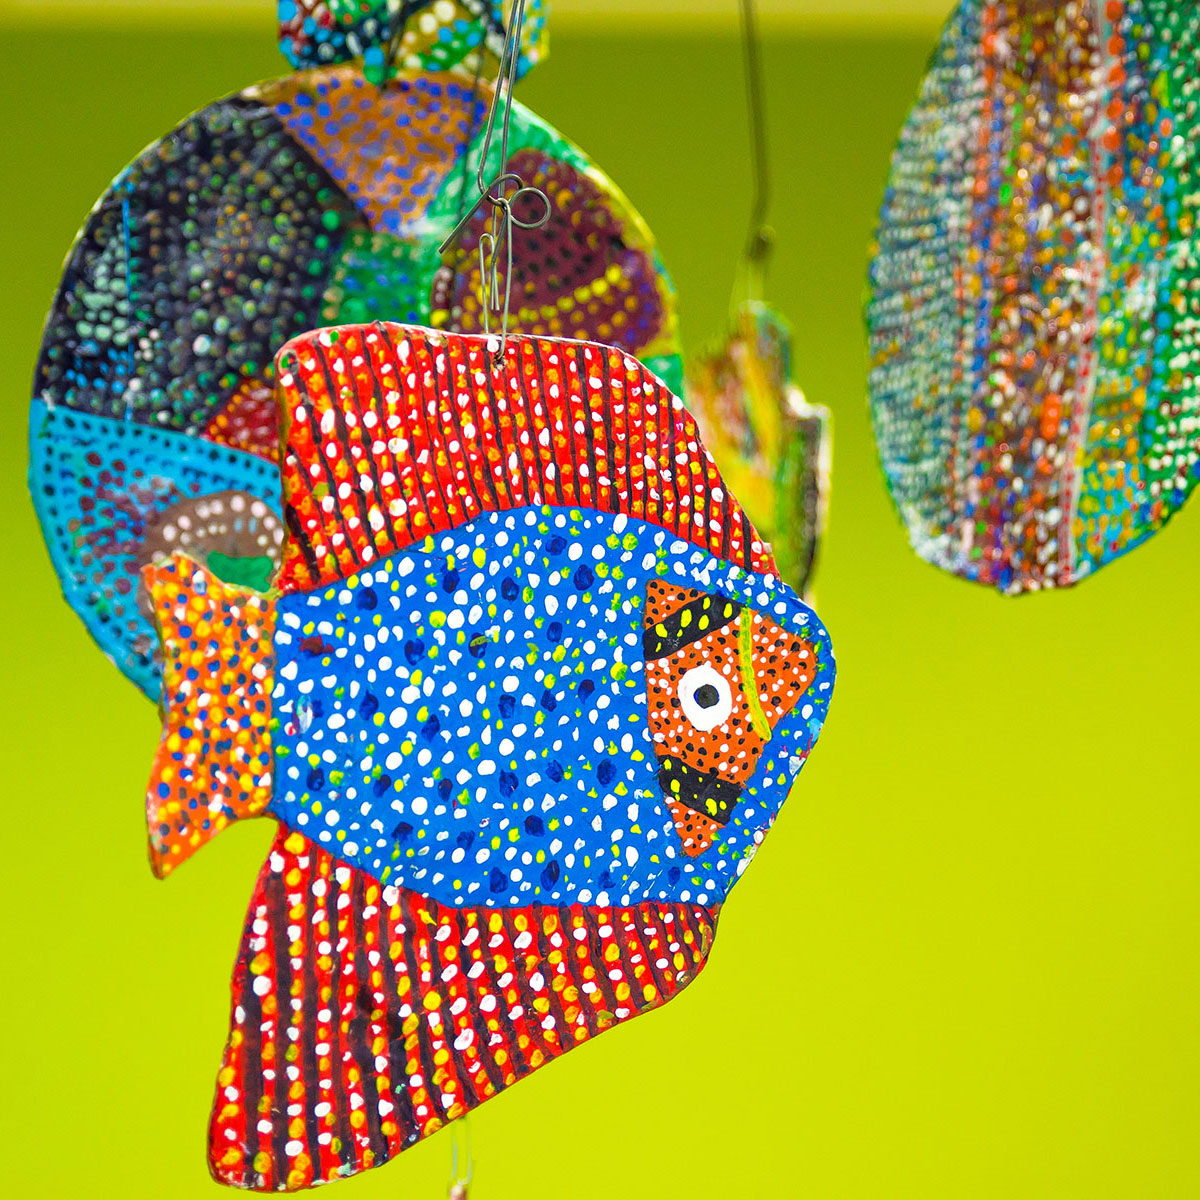 A photo of some brightly coloured artwork hanging from a ceiling